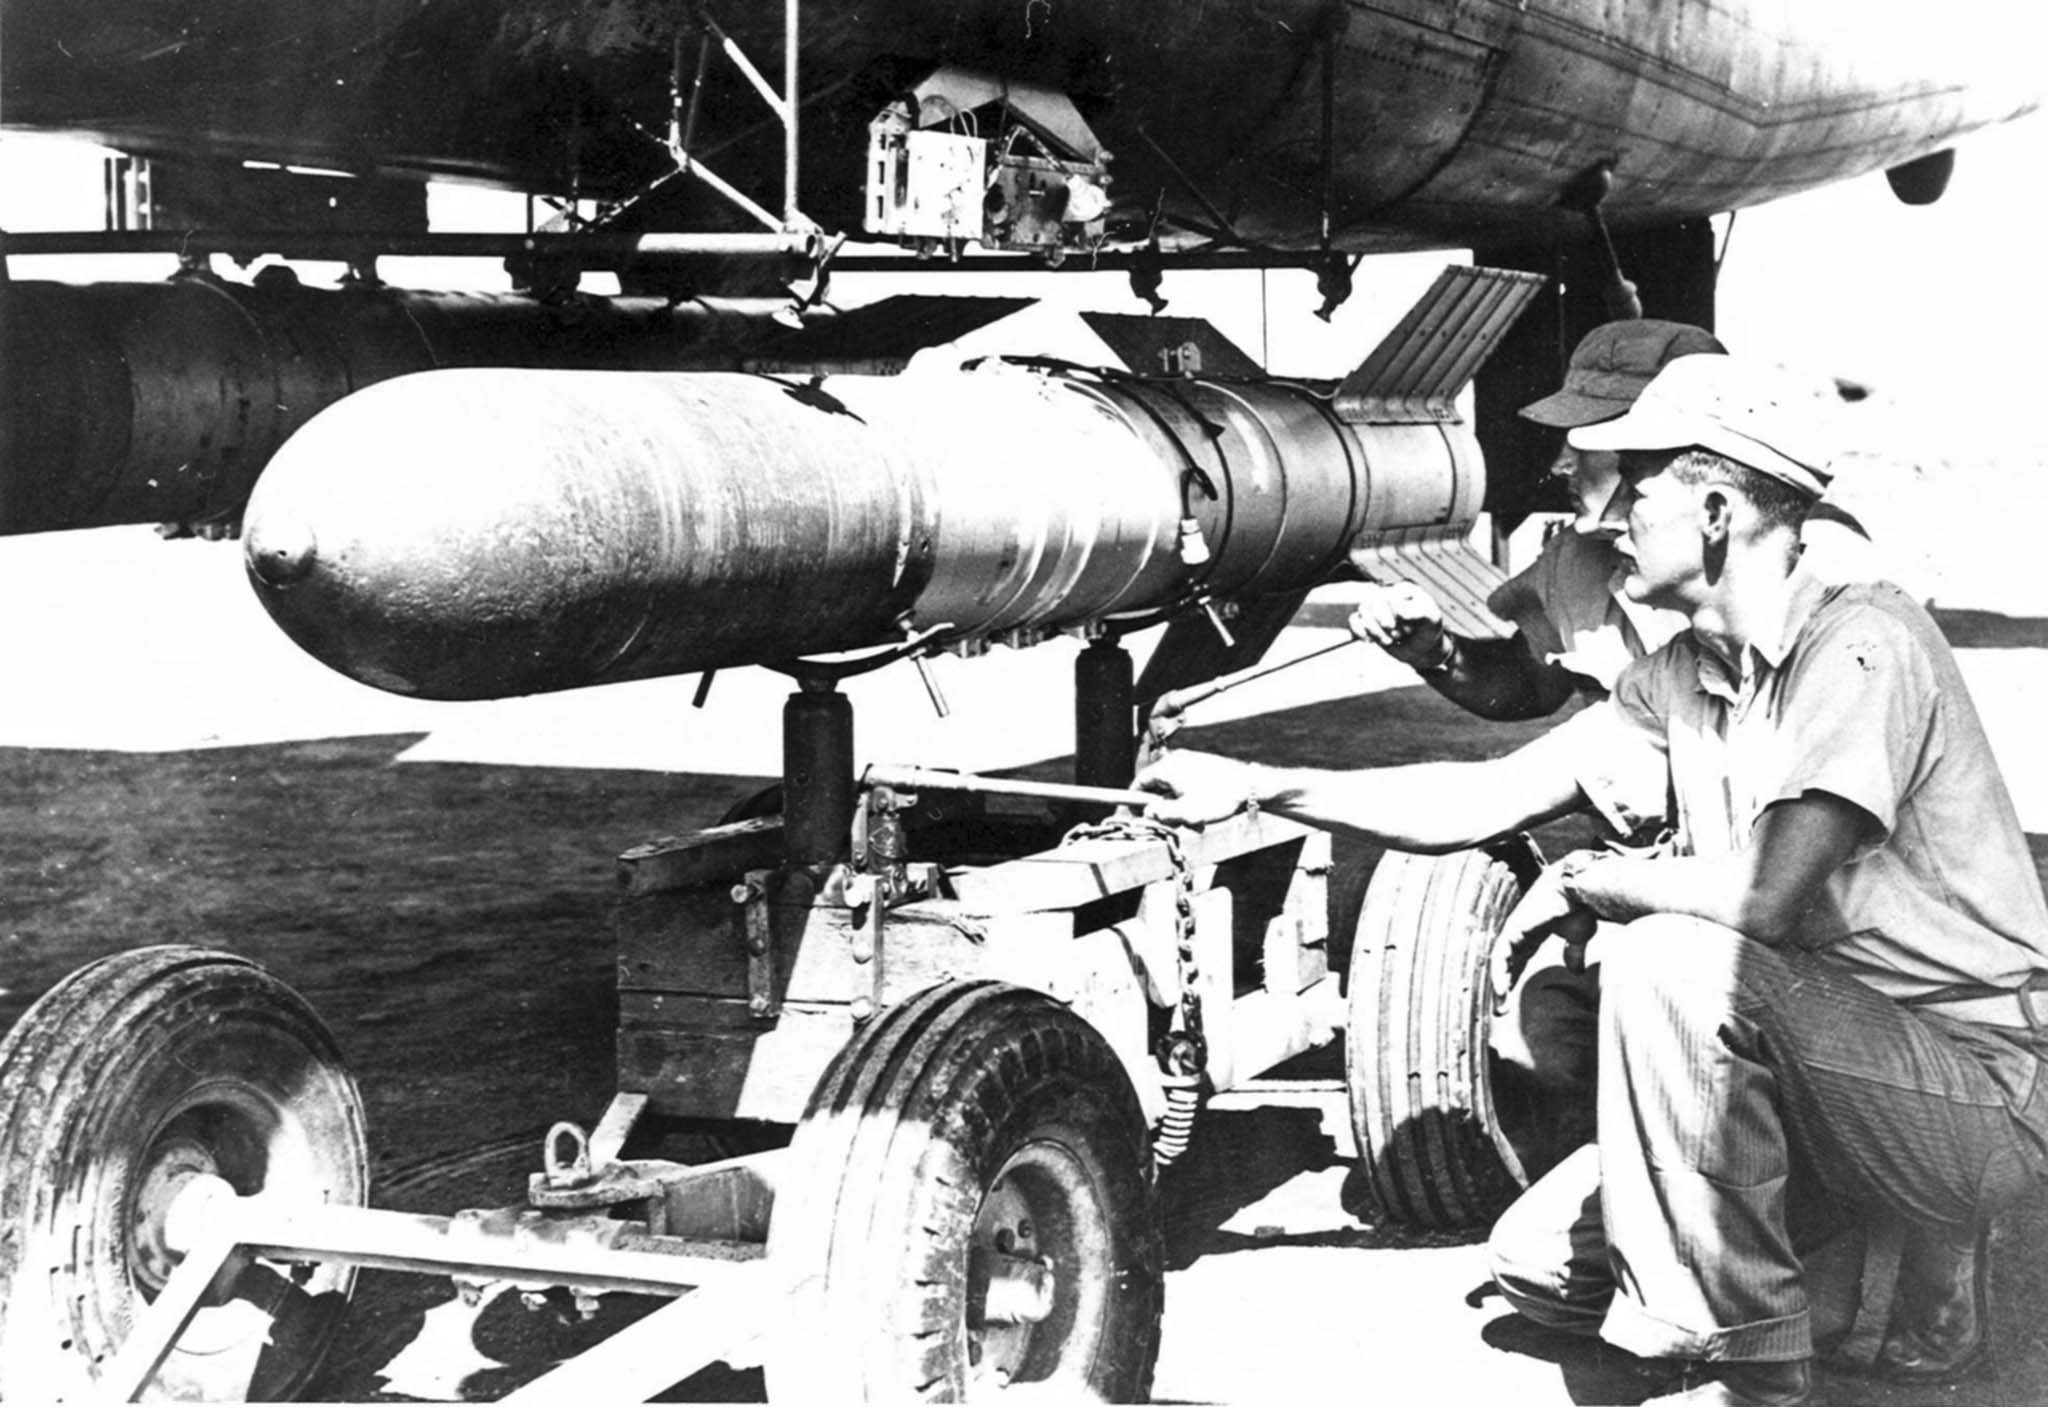 Anti-ship missile Tiny Tim